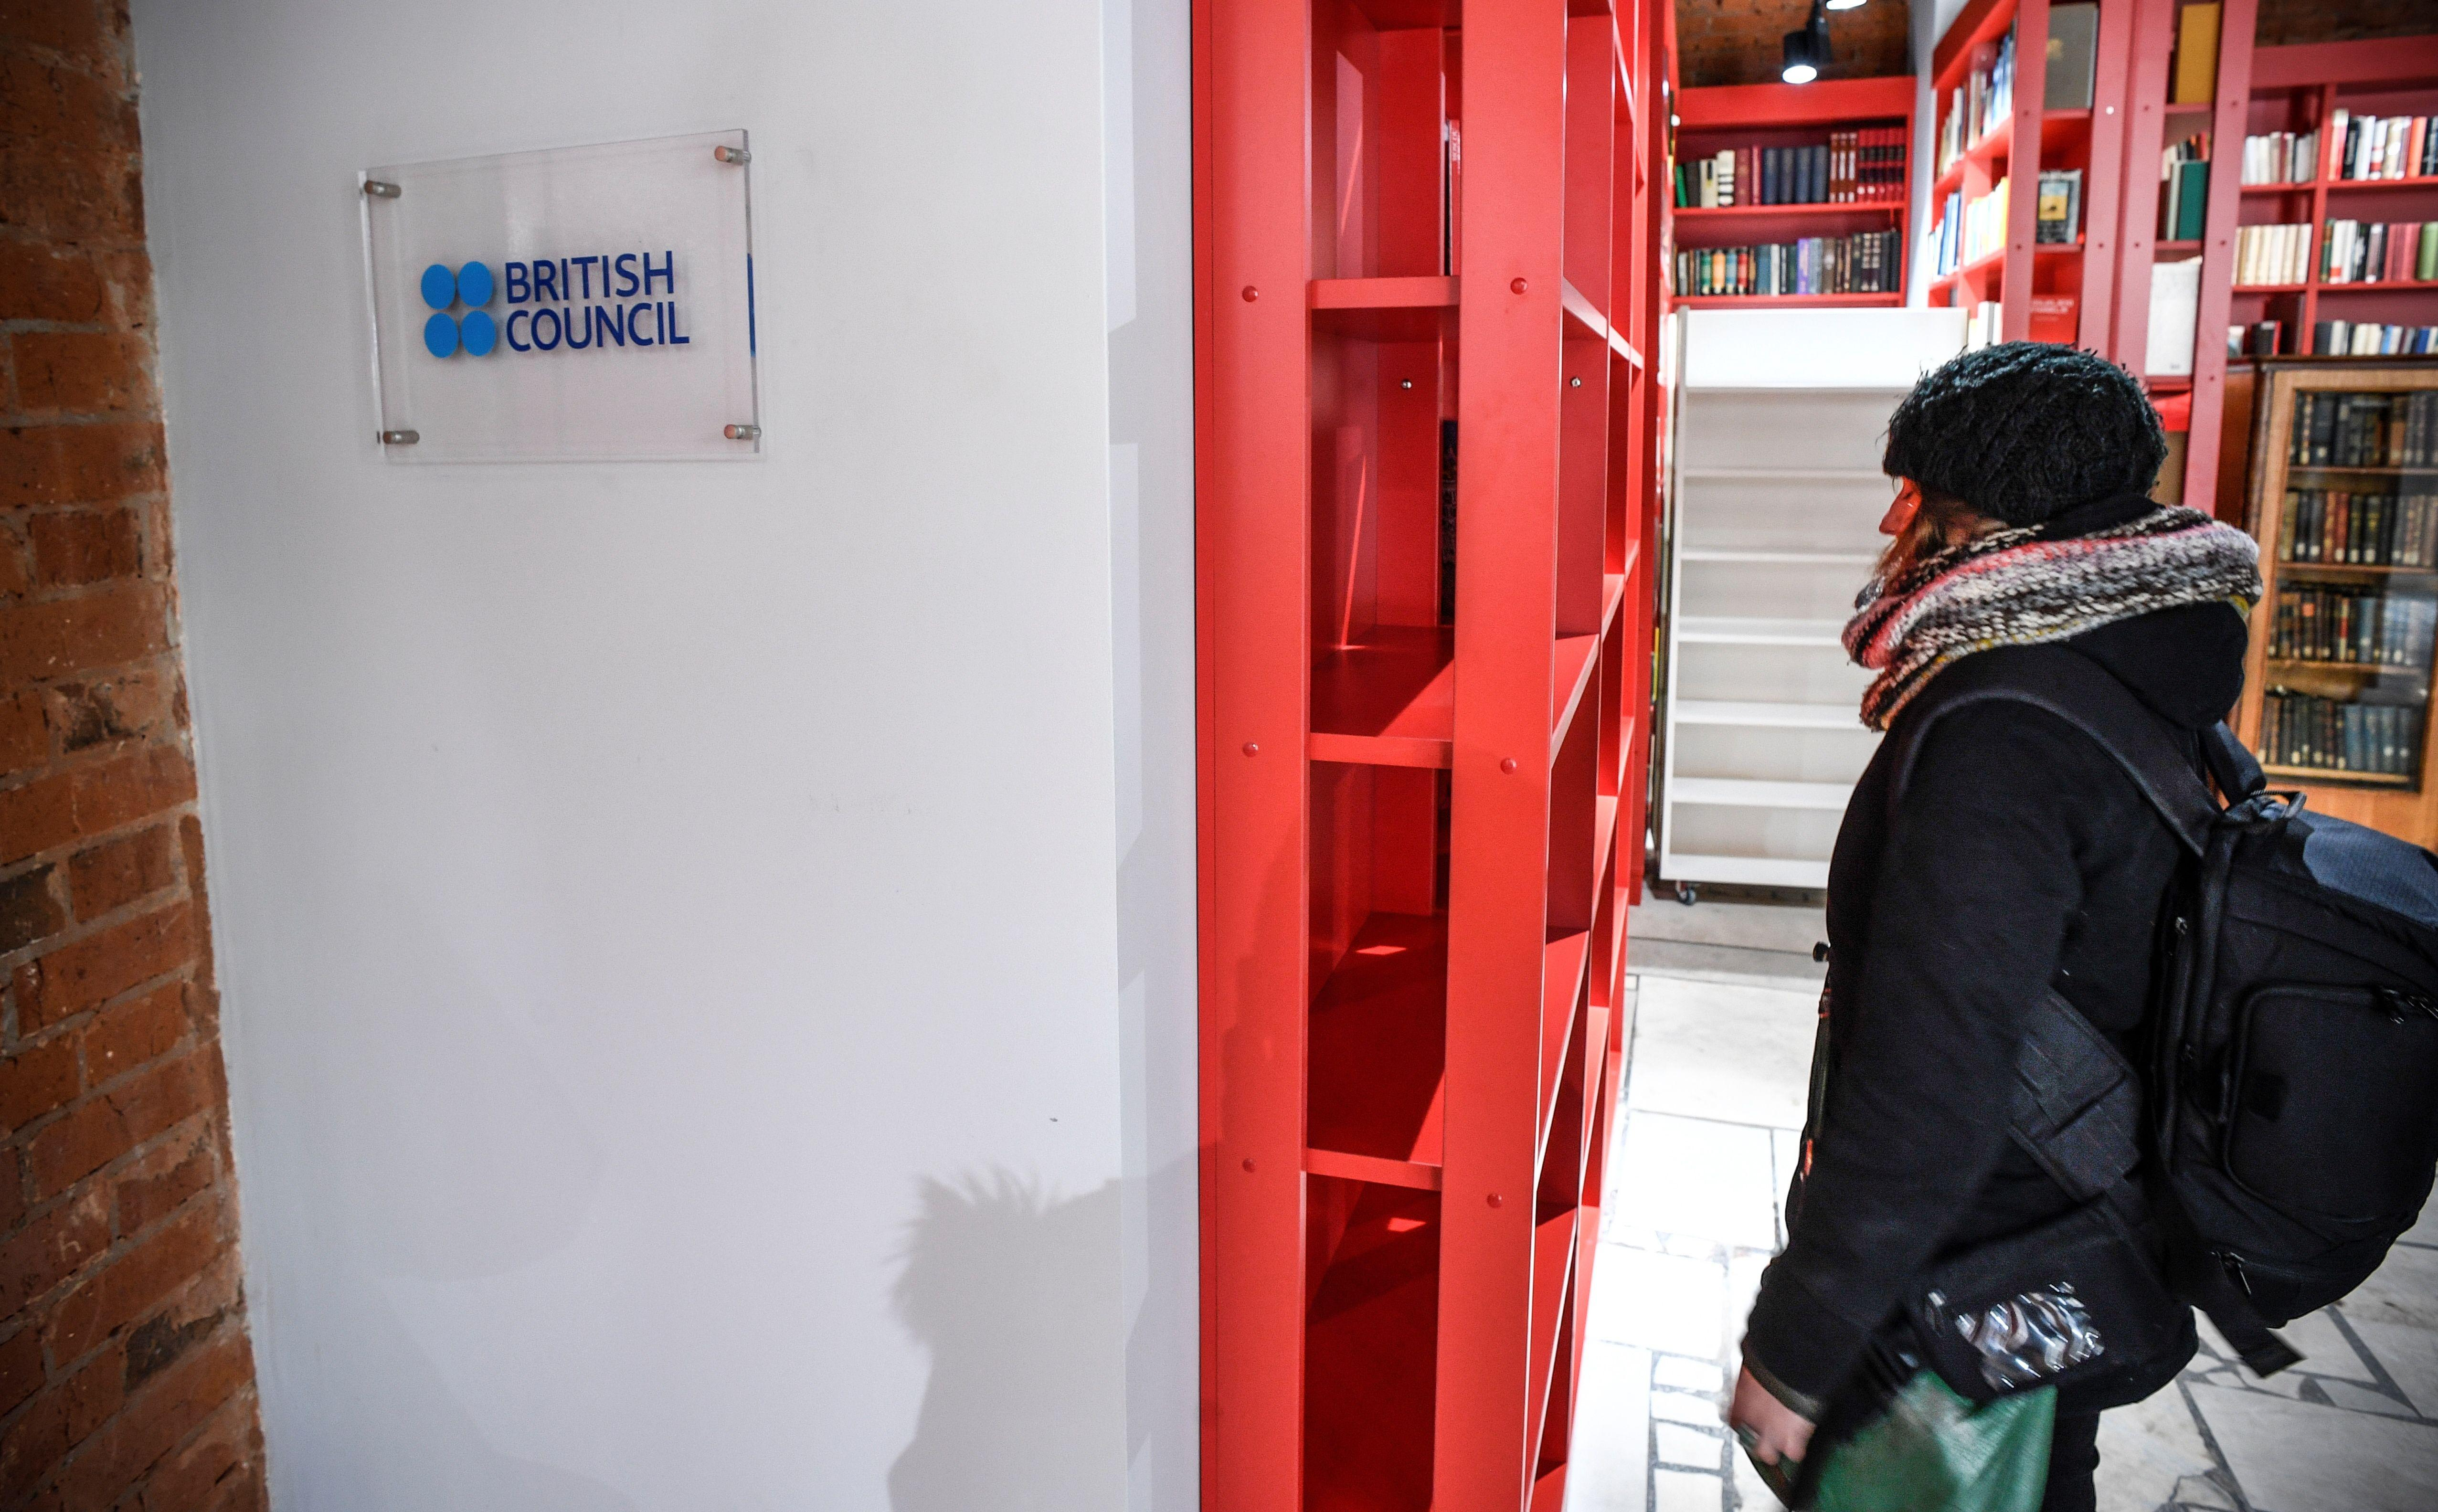 A woman stands next to the entrance of the British Council office in Moscow on March 2018.